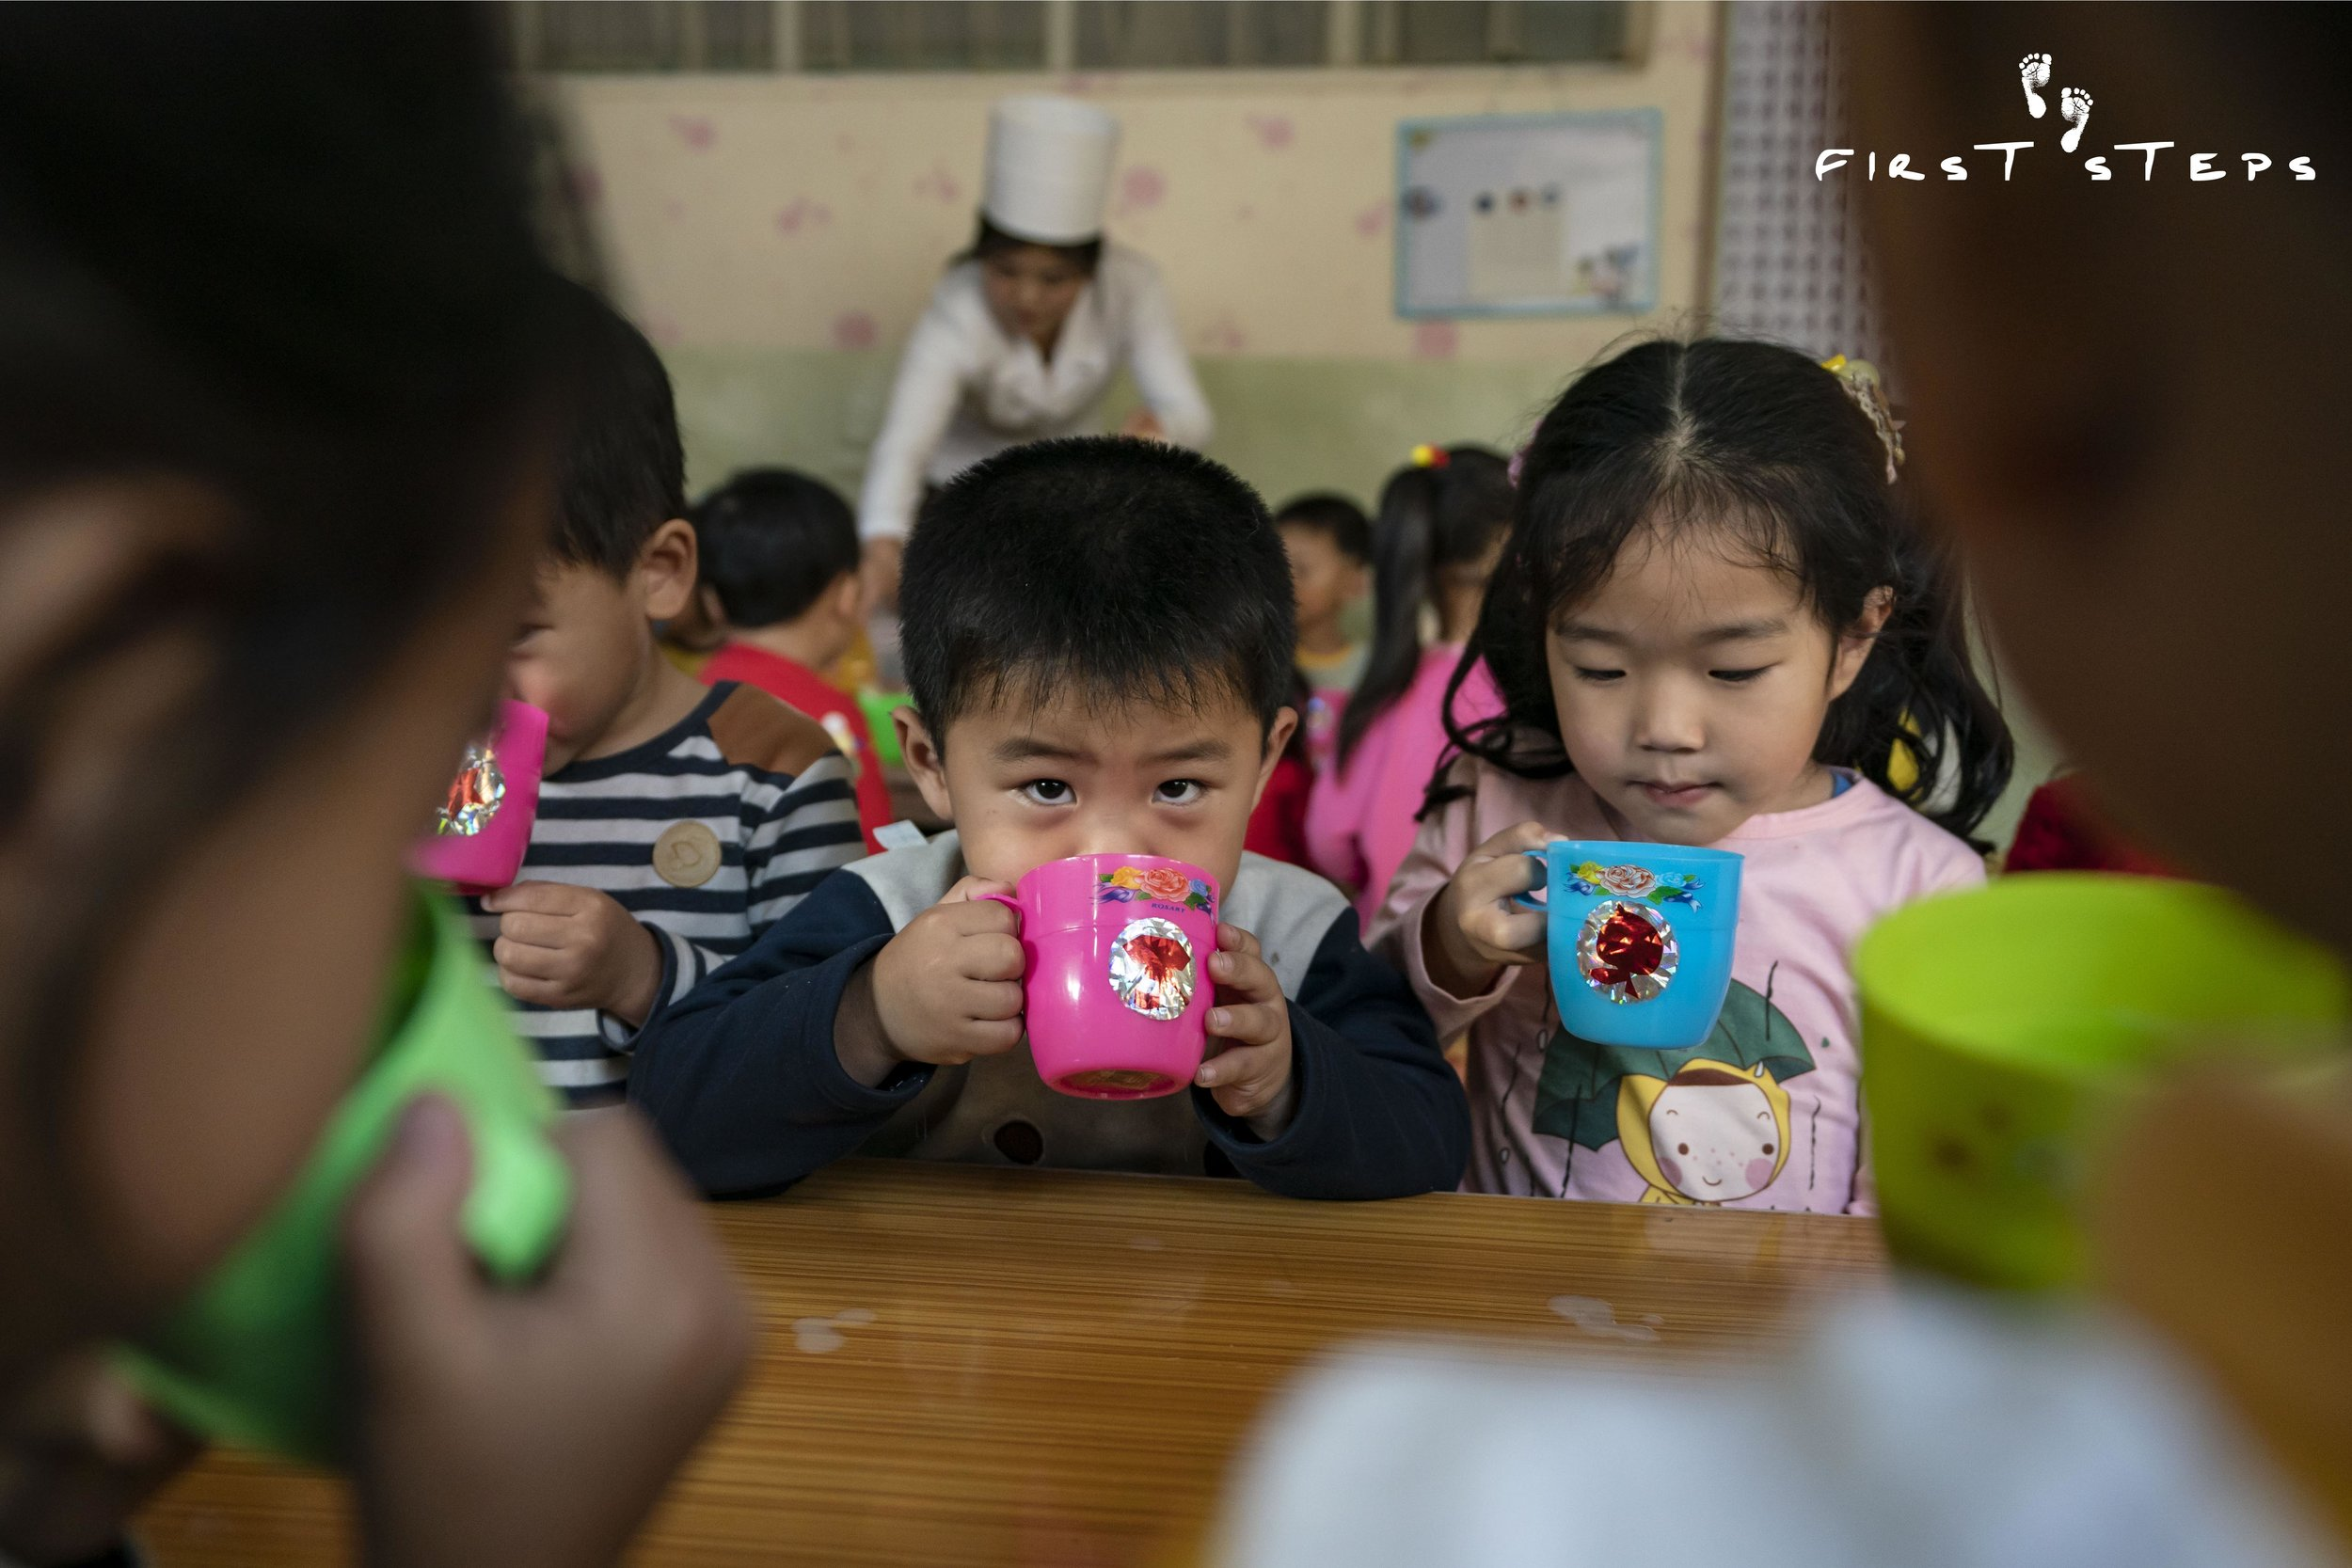 """The children like the soymilk and drink it well,"" said Choe Kyong-Ok, who oversees the inventory and supply of soymilk at the daycare."